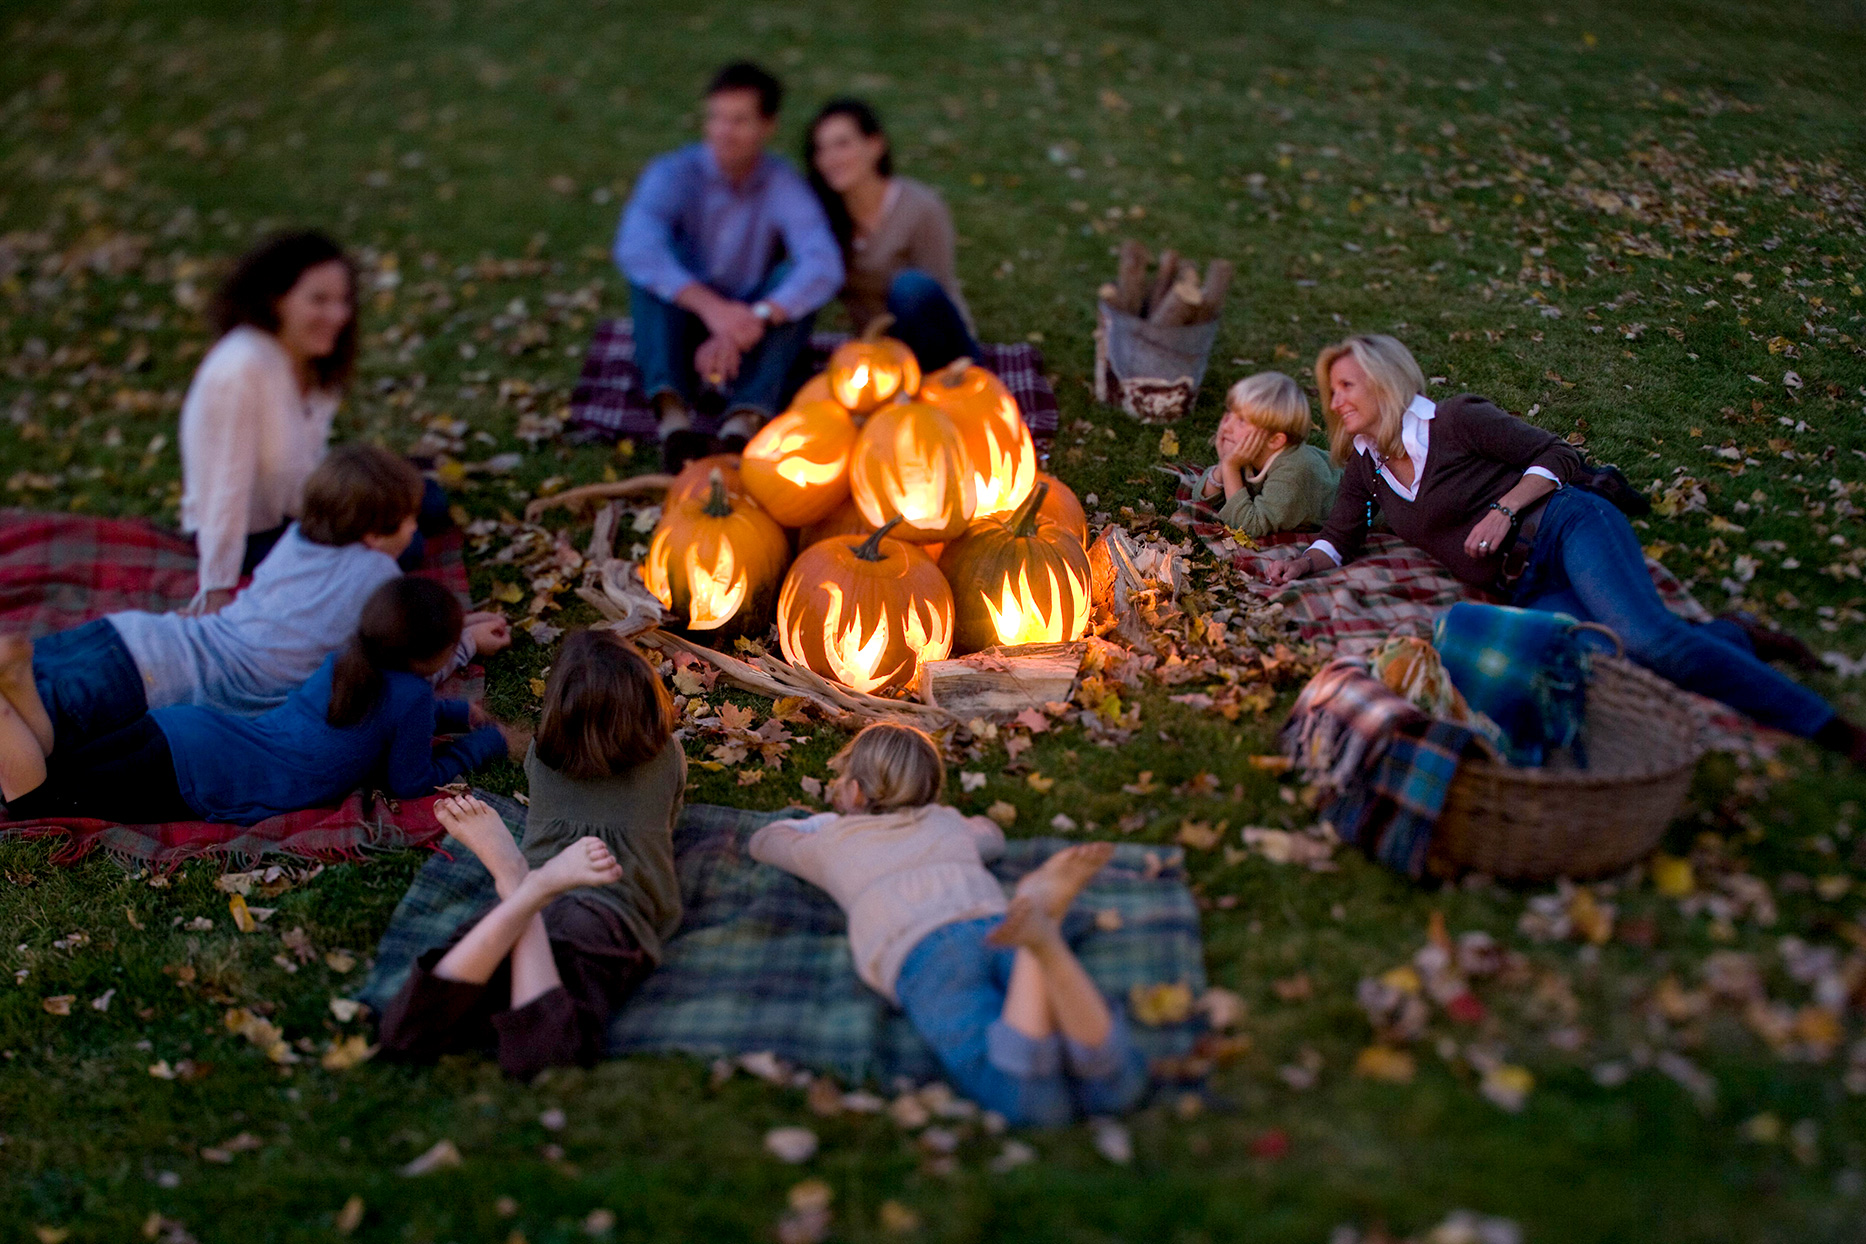 people lying around pile of lighted flame designed pumpkins